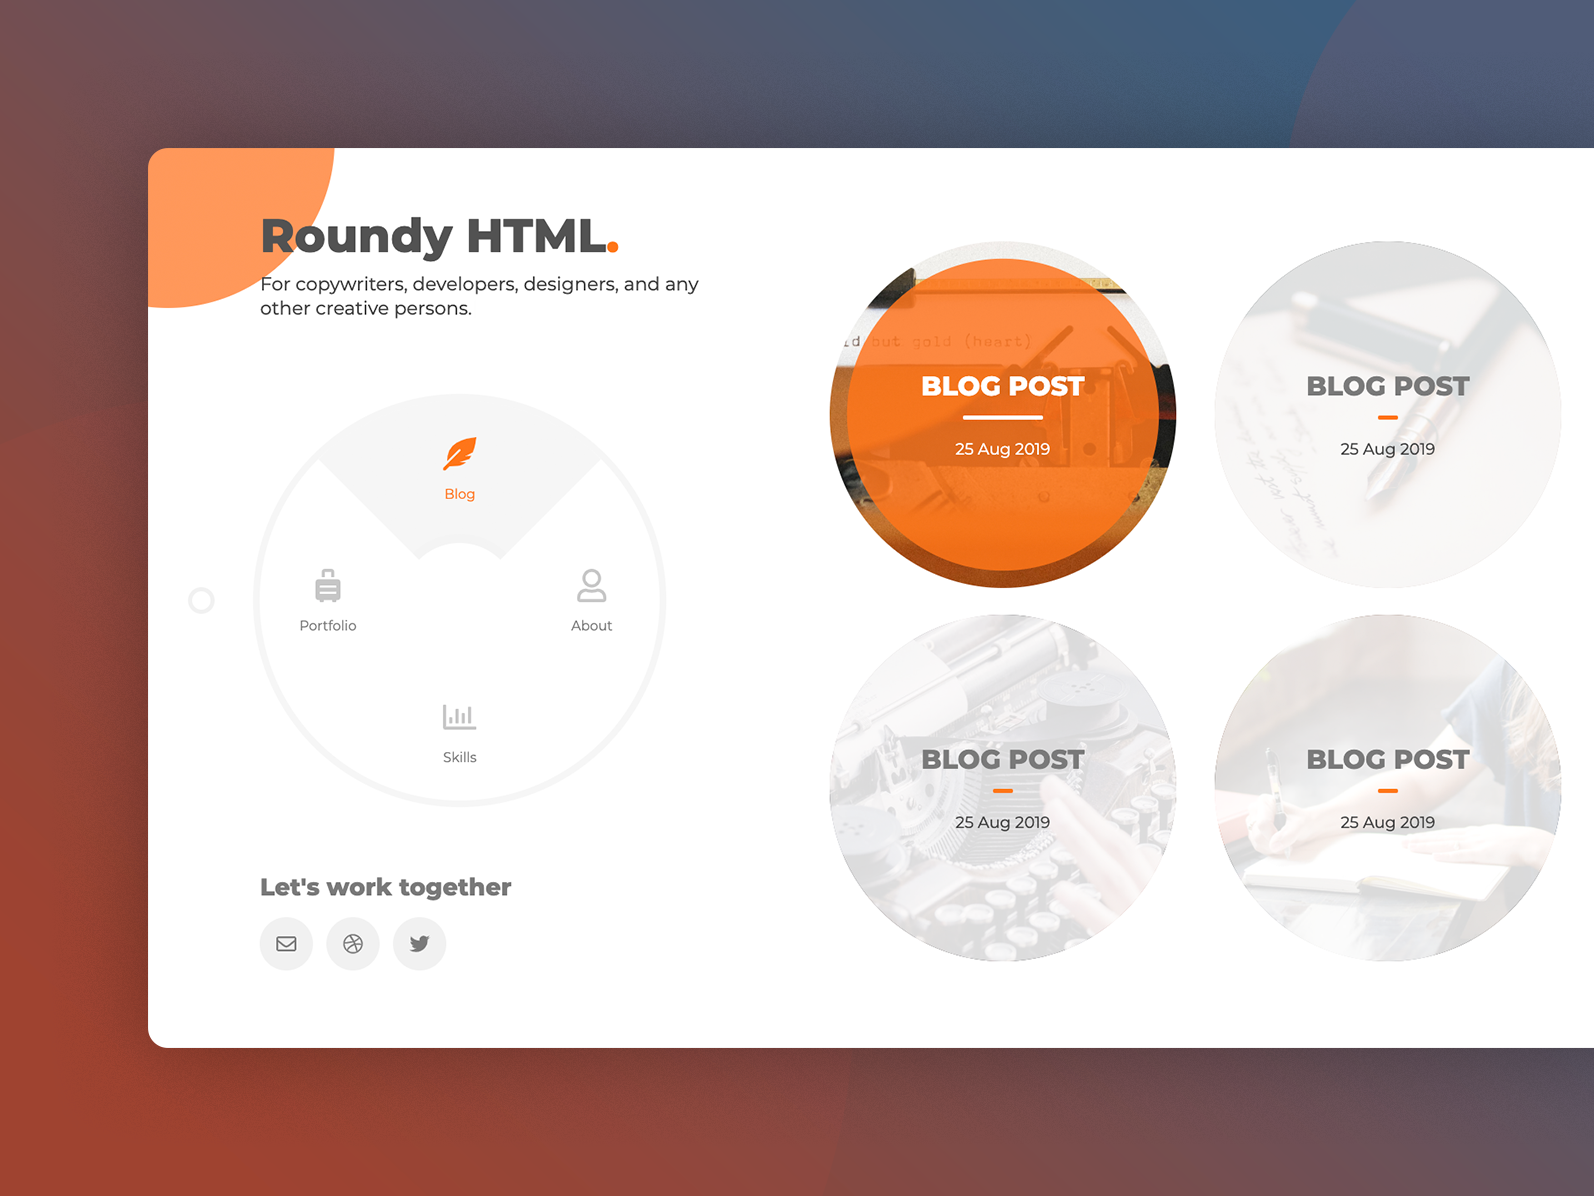 Roundy Html vcard vc trend round resume radial profile portfolio personal website personal freelancer cv curriculum vitae circle business card